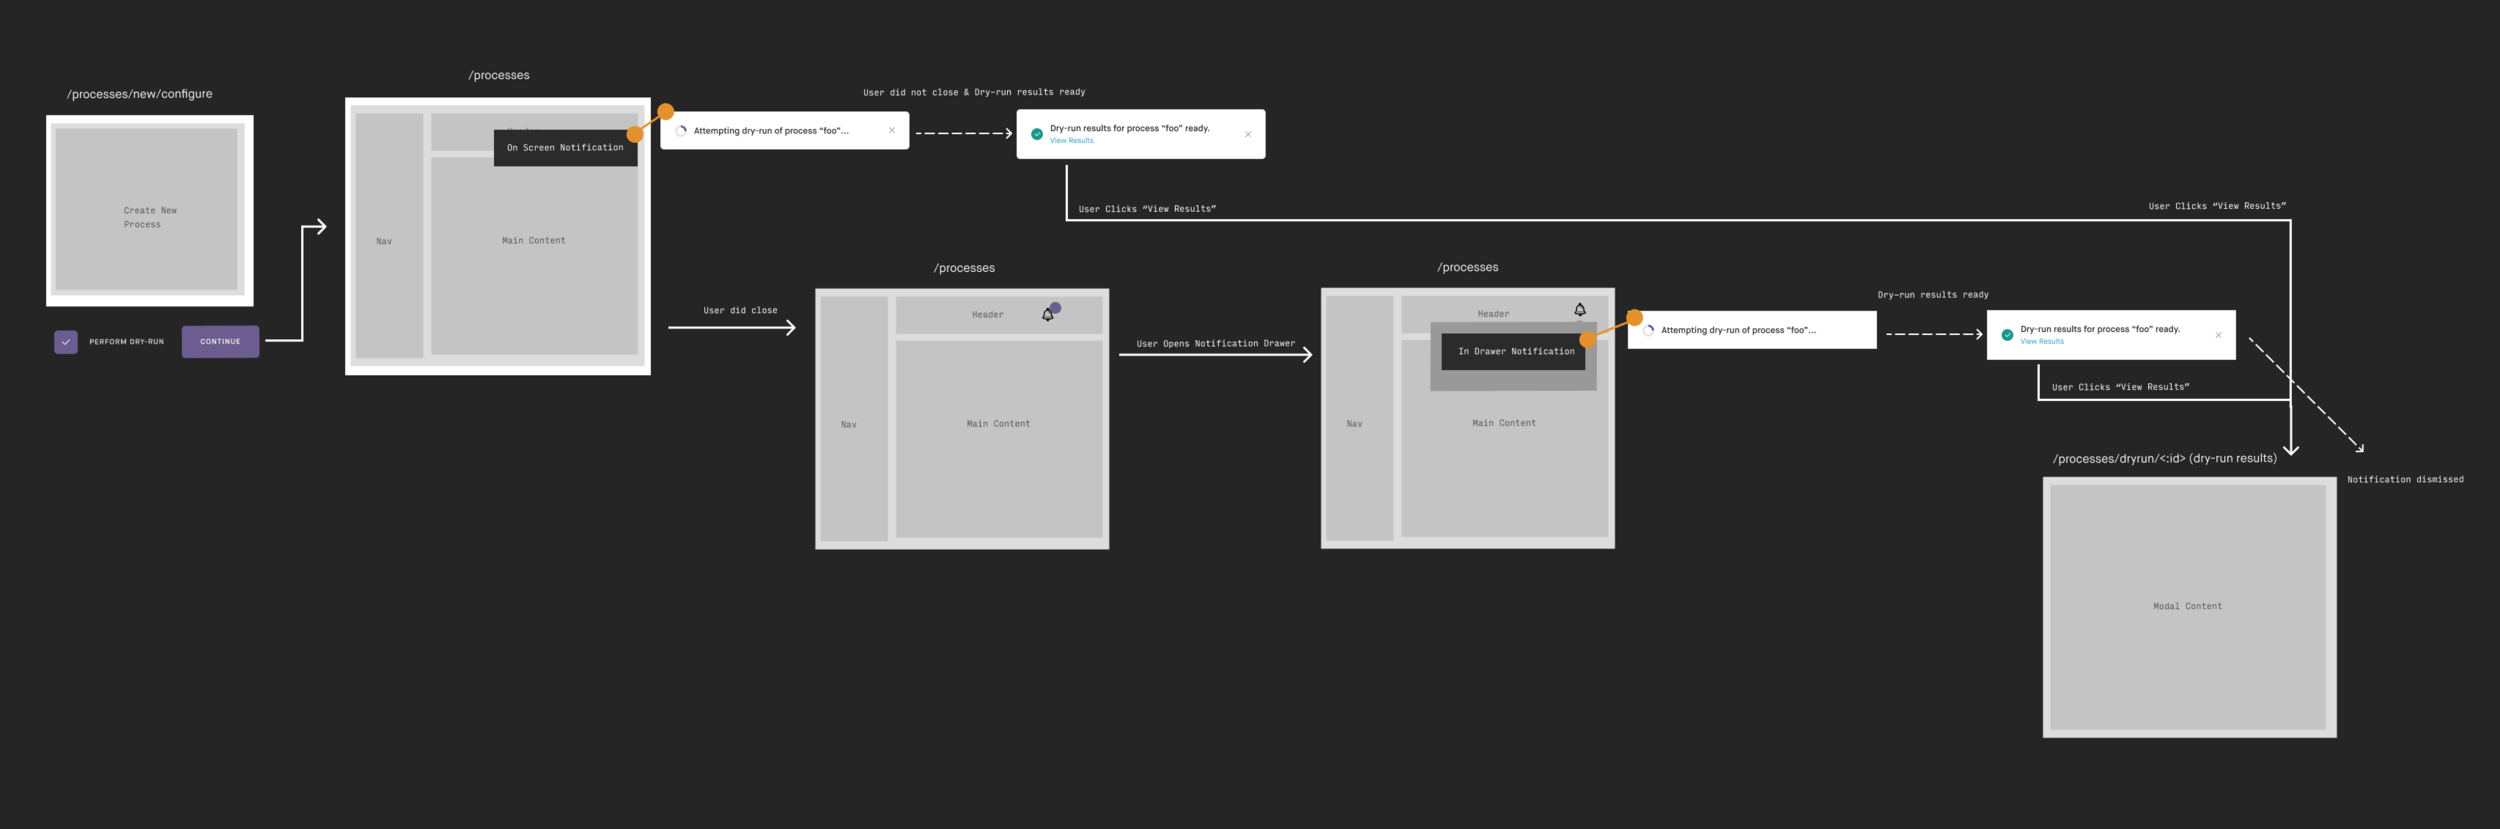 Notification Flow (Dry-Run example).png